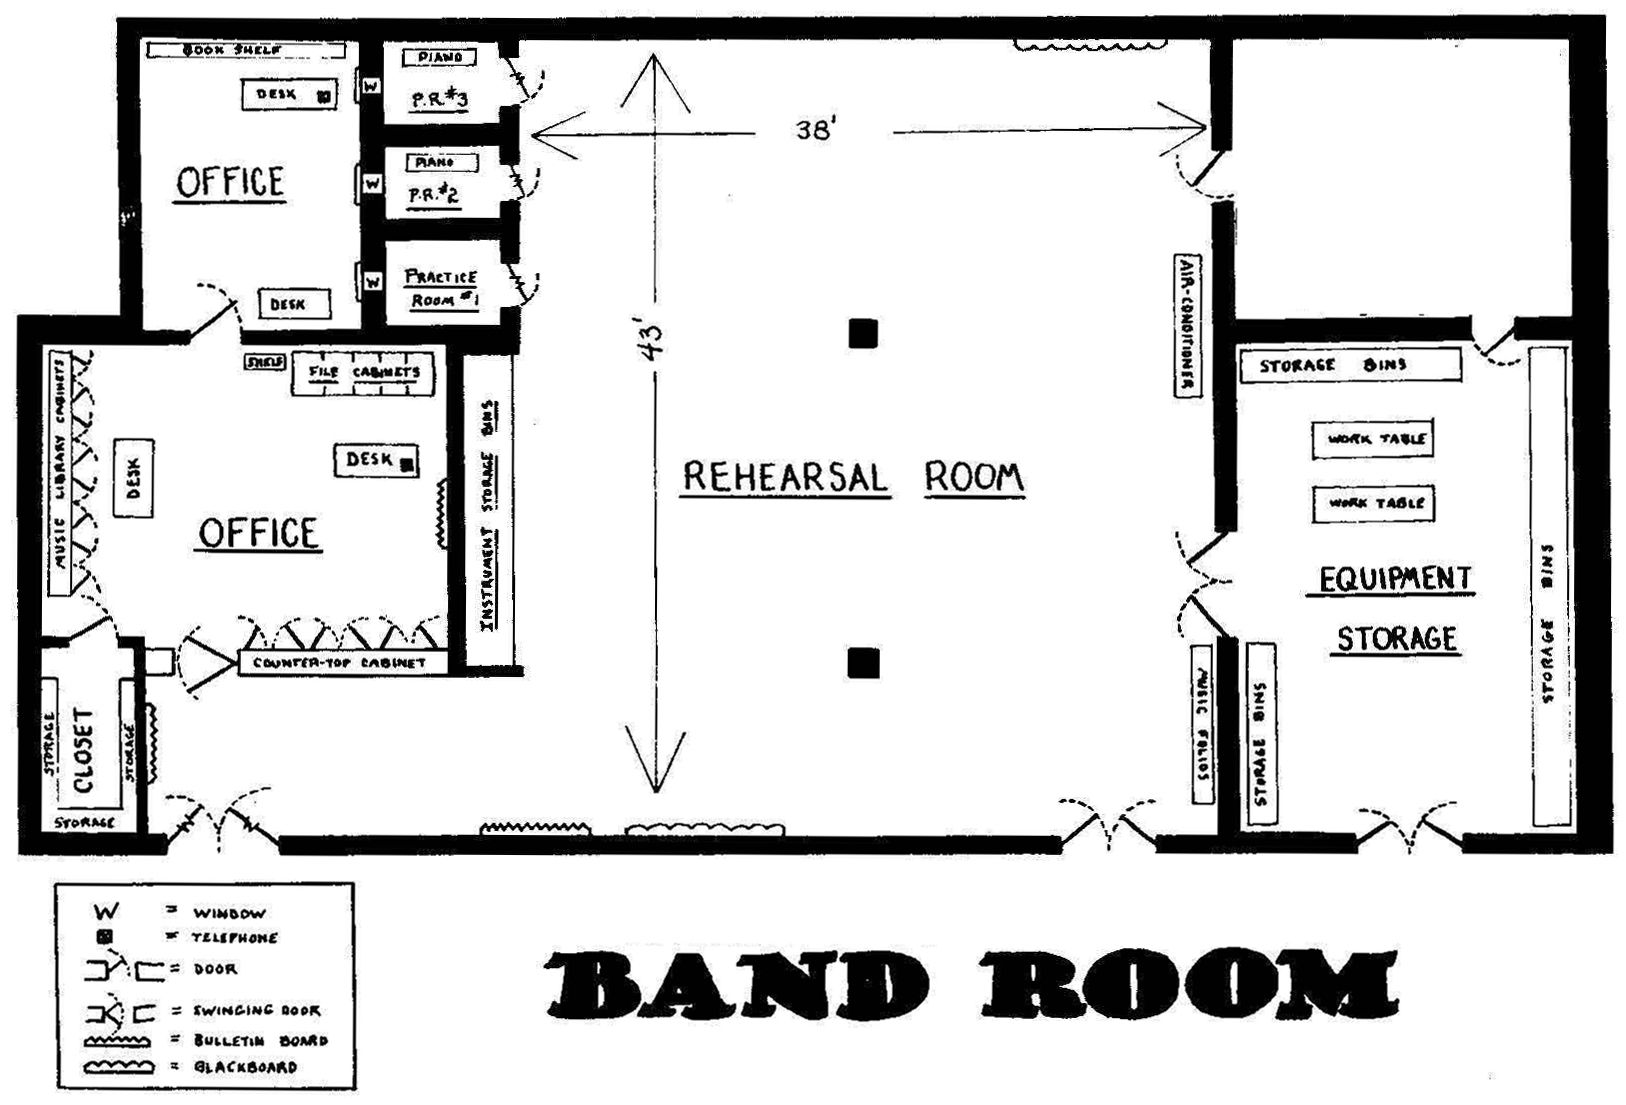 band room layout [ 1626 x 1105 Pixel ]